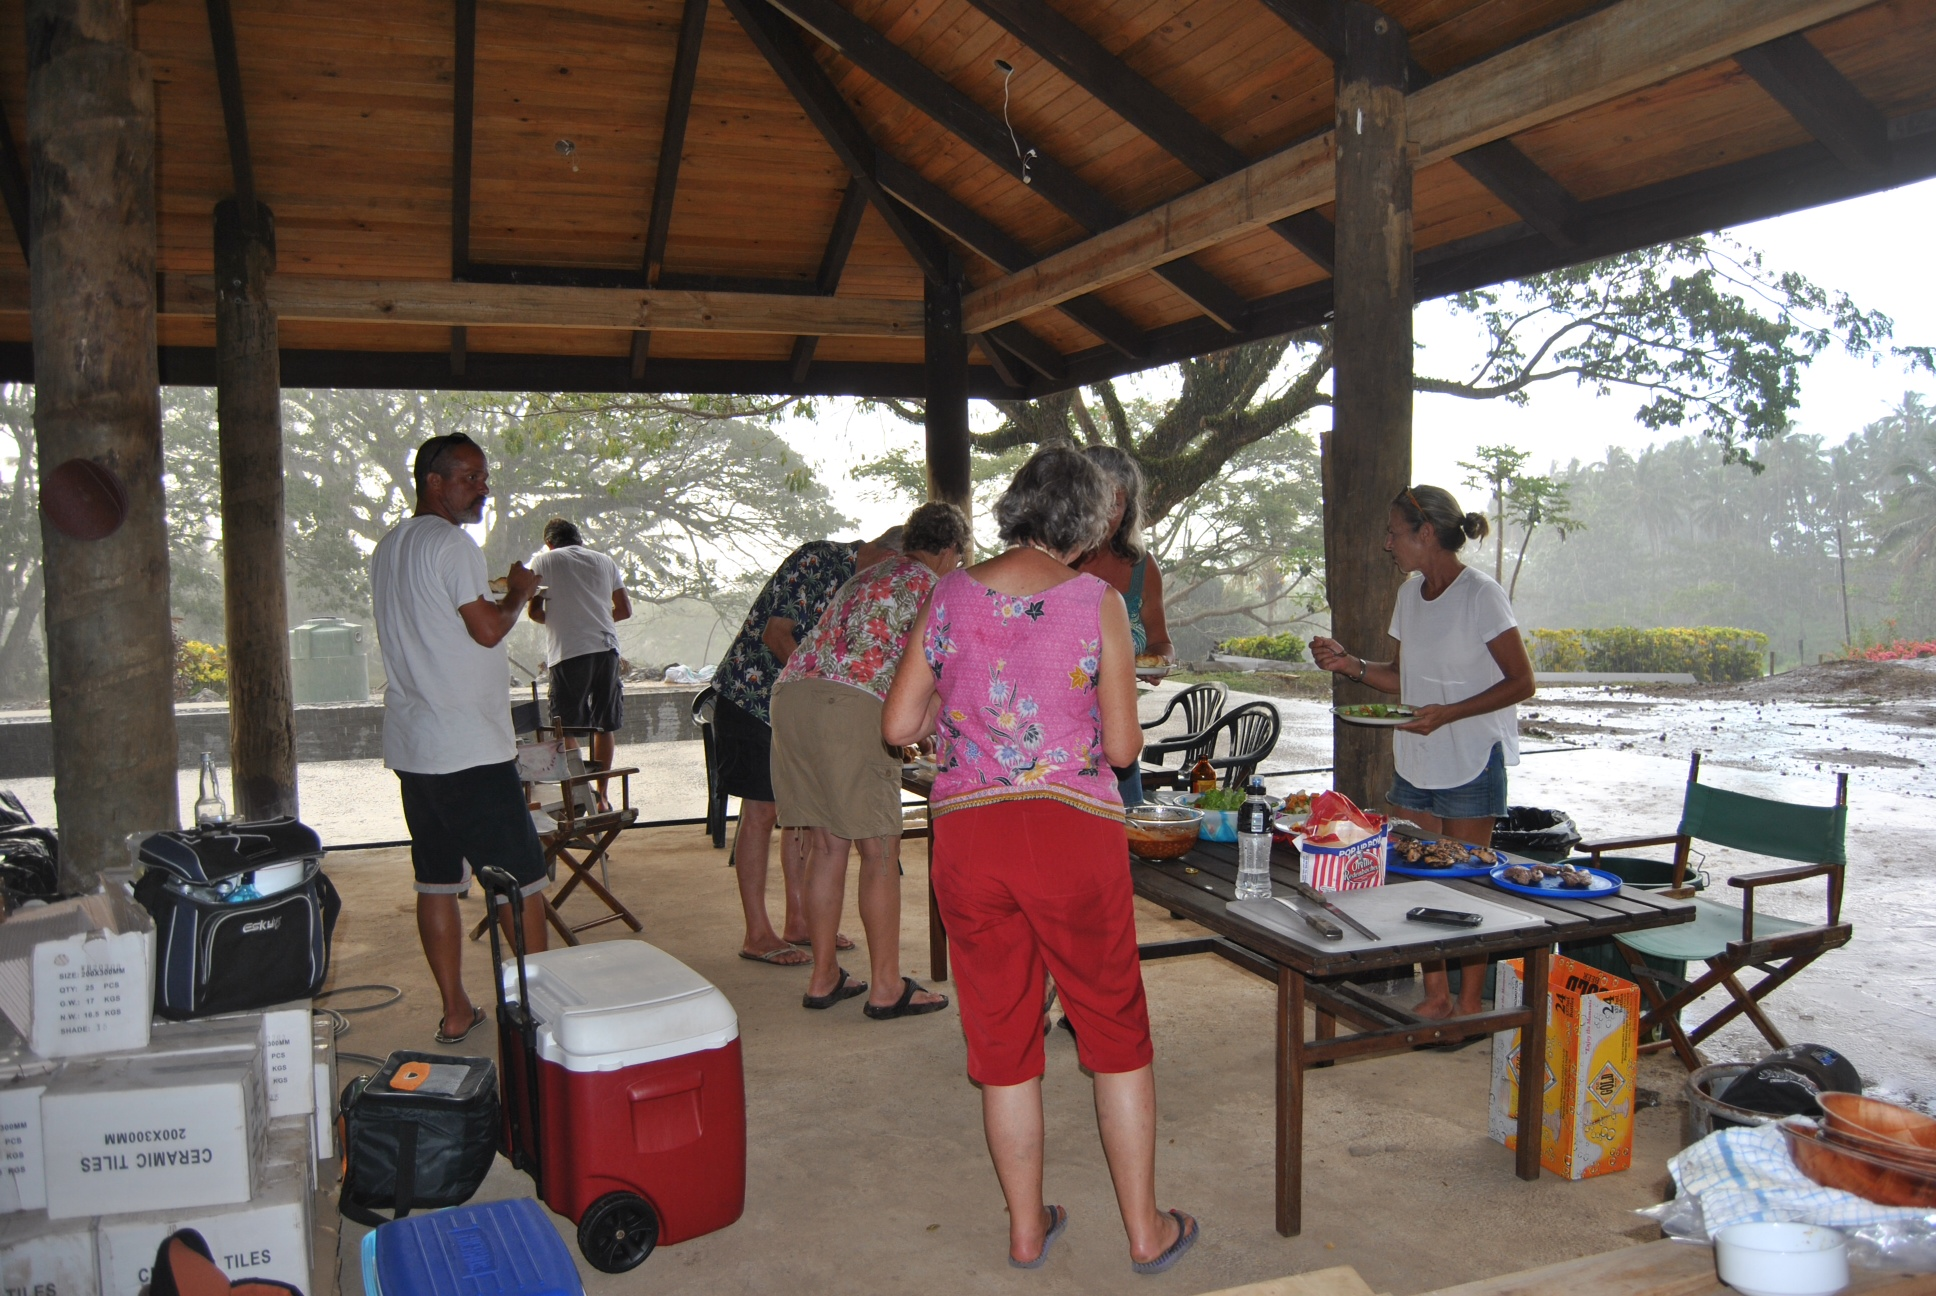 With the breaking of the drought by the slight misting of rain (by Taveuni standards), the residents felt it necessary to have a bbq at the Salty Fox. Note the boxes of ceramic tiles to be installed at theleft of the frame.